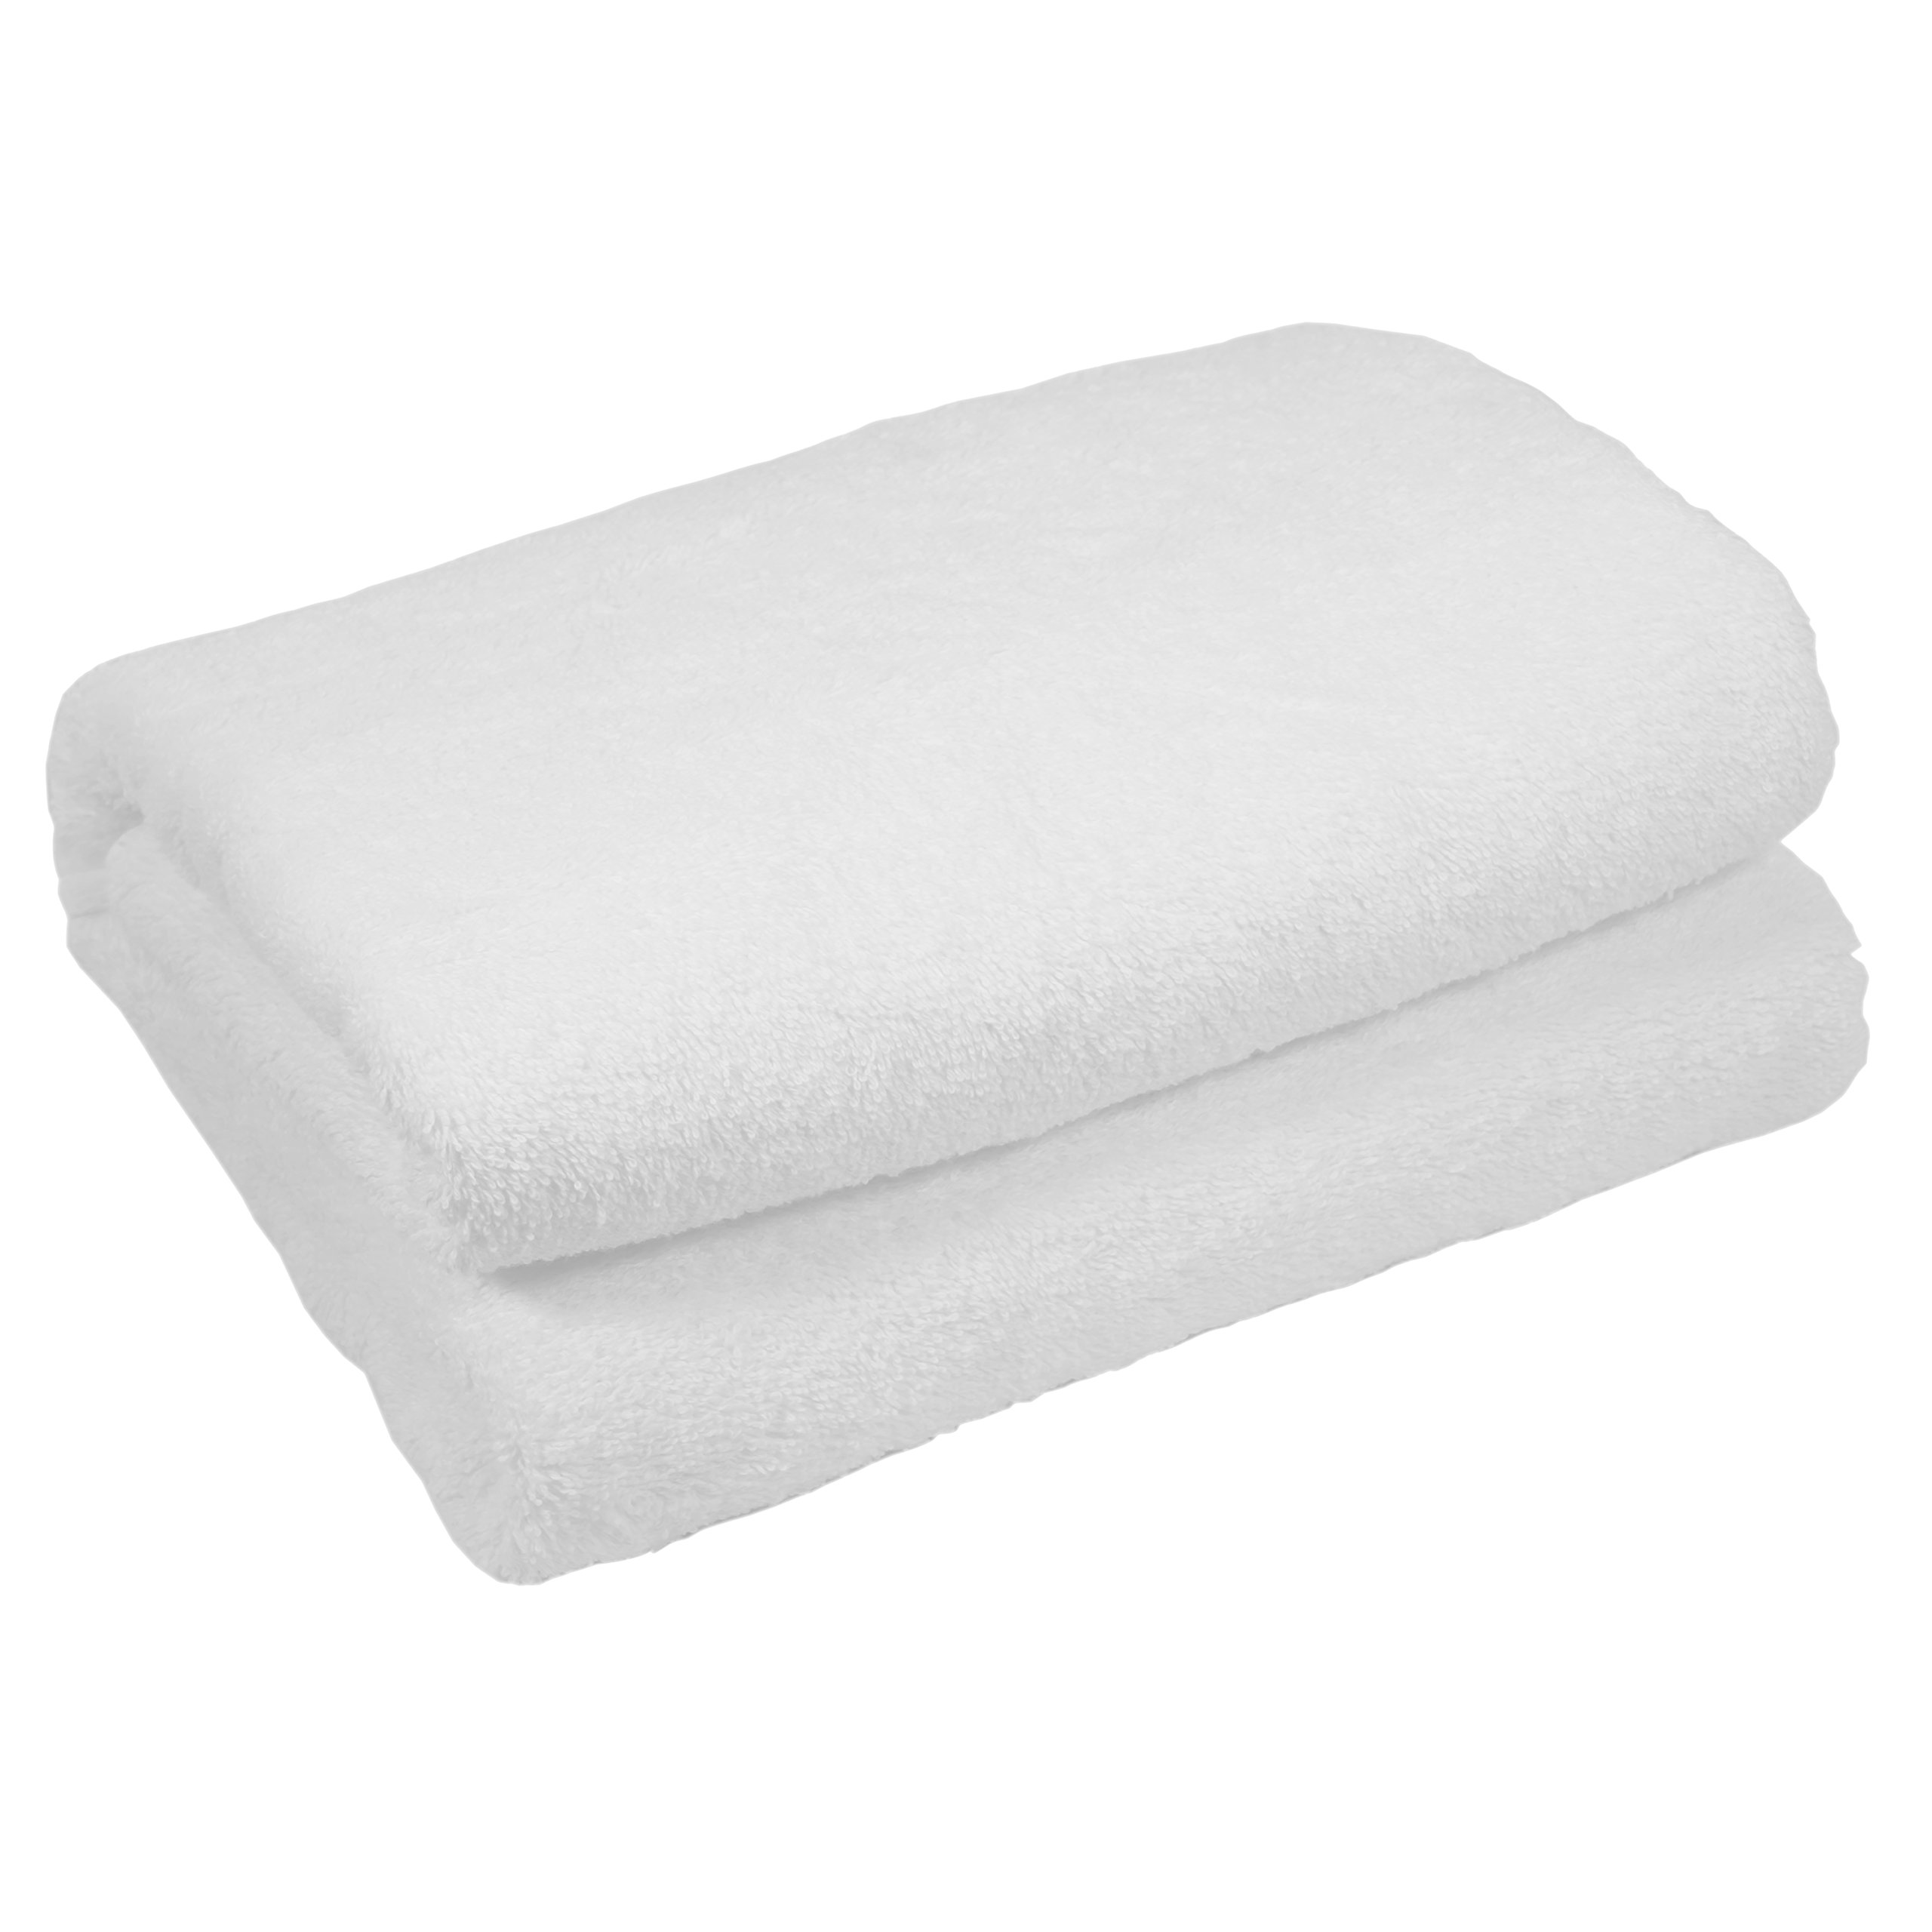 Home & Lounge Bath Towel Sheets - Extra Large 100% Turkish Cotton Spa and Hotel Towel - 35 Inch by 60 Inch - Luxury Soft and Comfortable Sheet - Machine Washable (White)